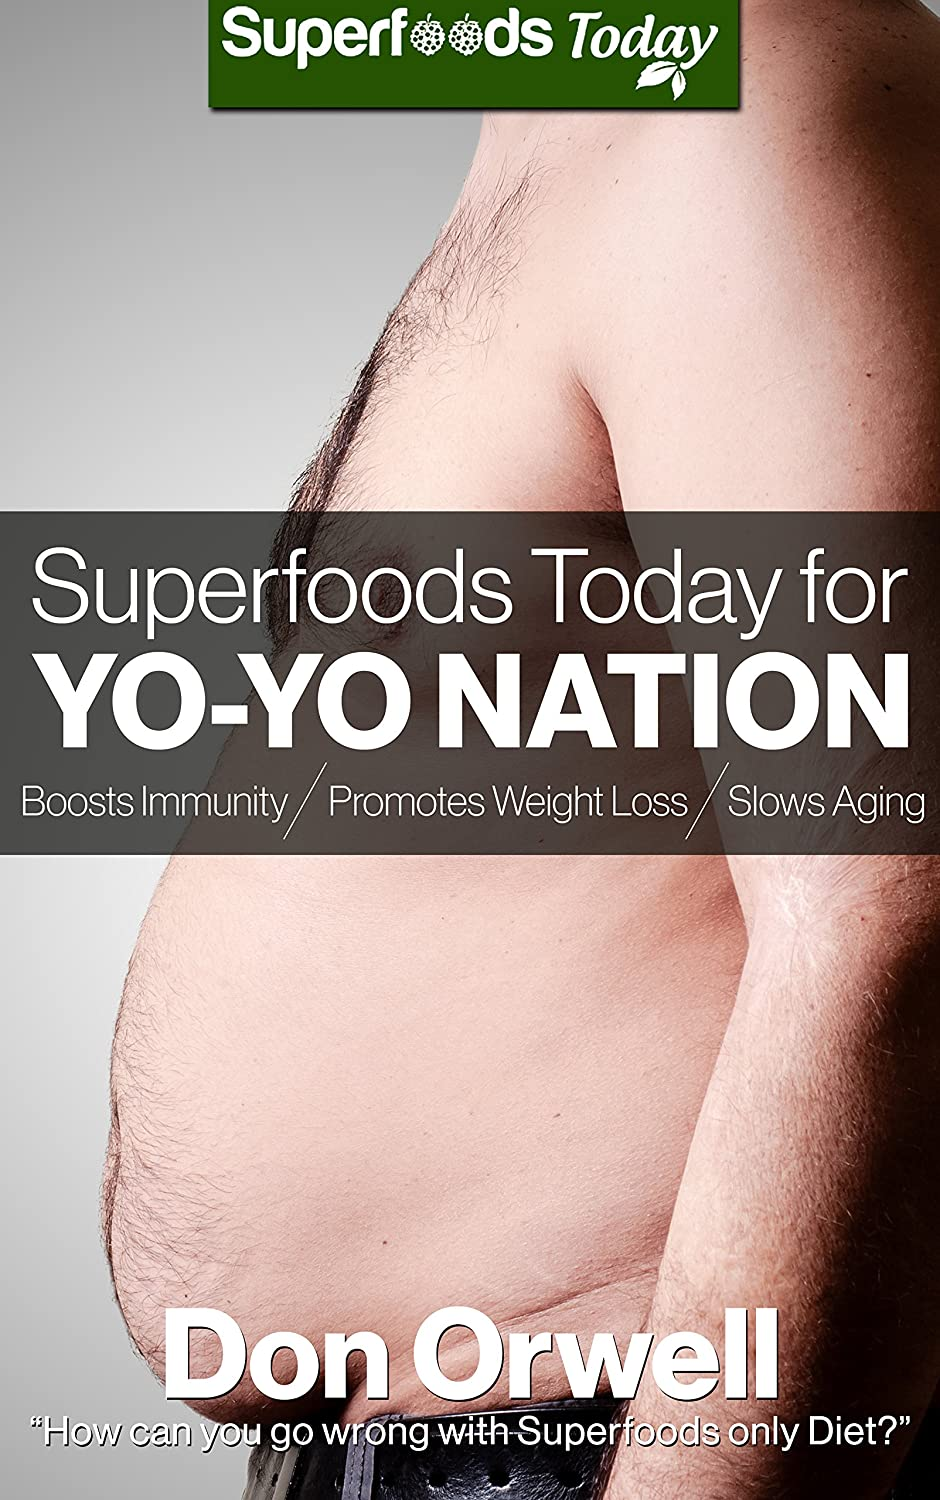 Superfoods Today for YO-YO Nation: Lose Weight, Boost Energy, Fix your Hormone Imbalance... by Don Orwell